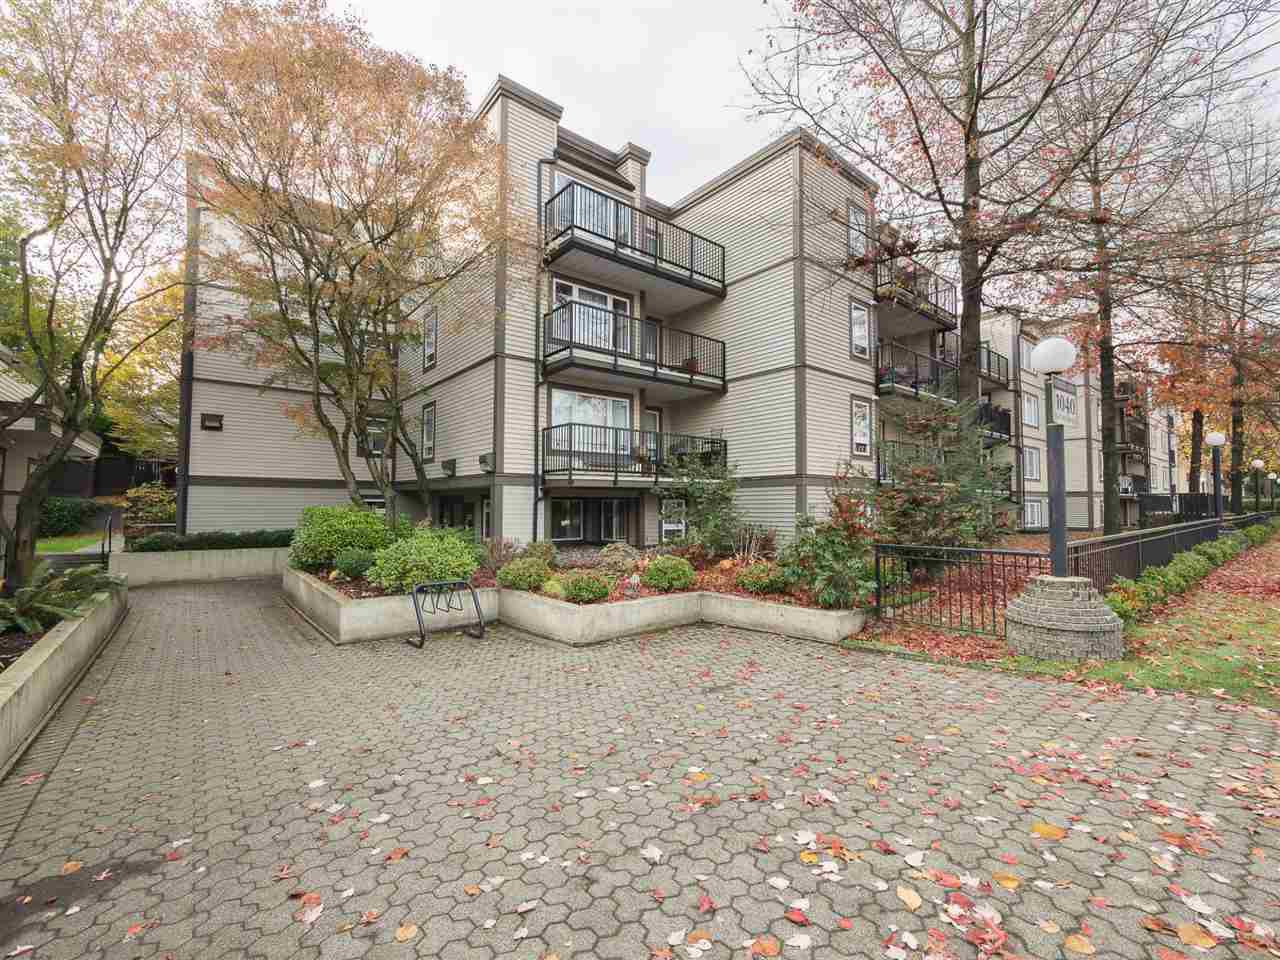 Main Photo: 111 1040 E BROADWAY Avenue in Vancouver: Mount Pleasant VE Condo for sale (Vancouver East)  : MLS®# R2353697